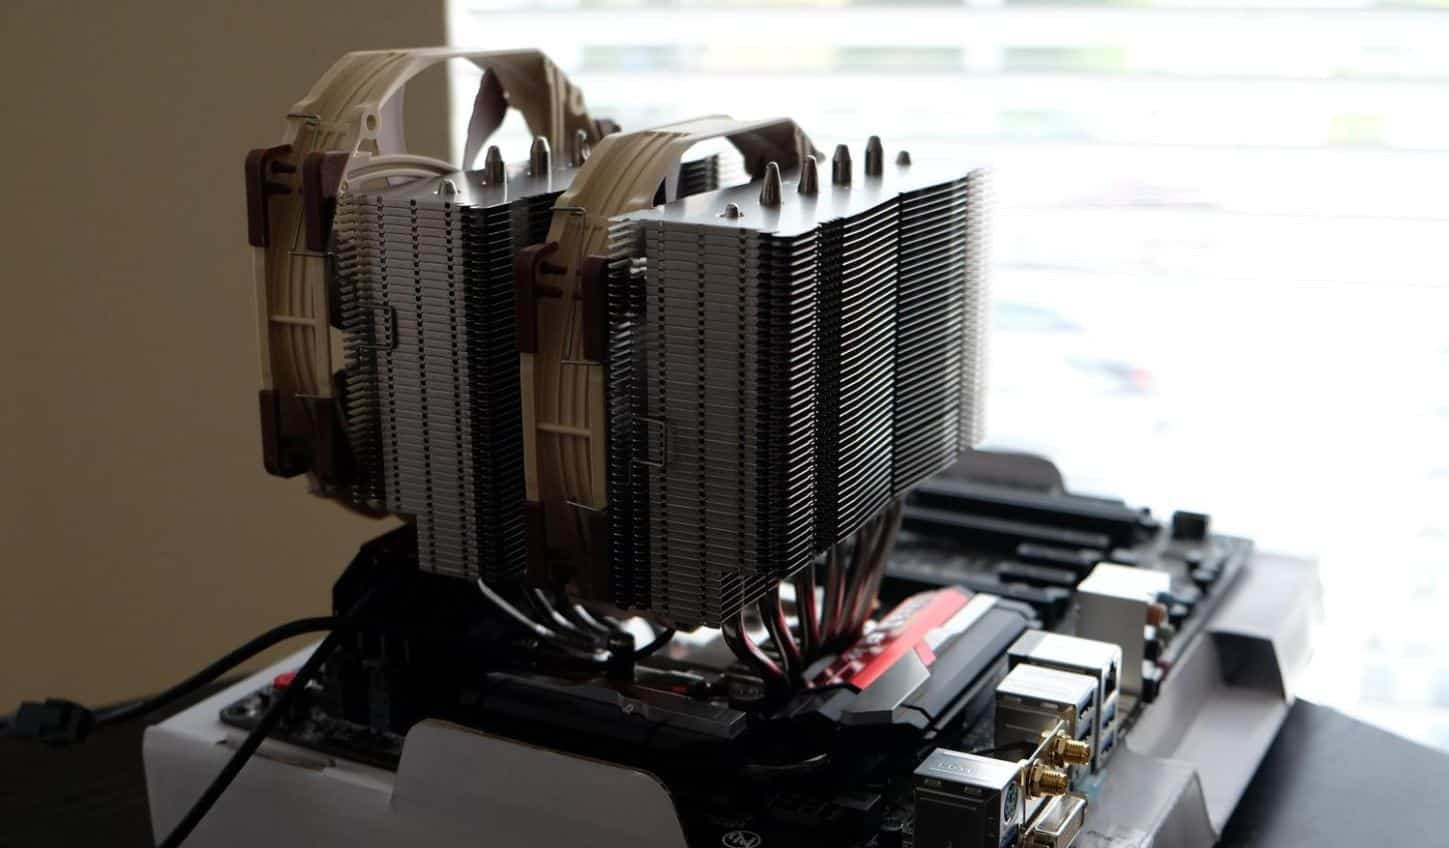 What is Overclocking And When is it Bad? - Why The Lucky Stiff